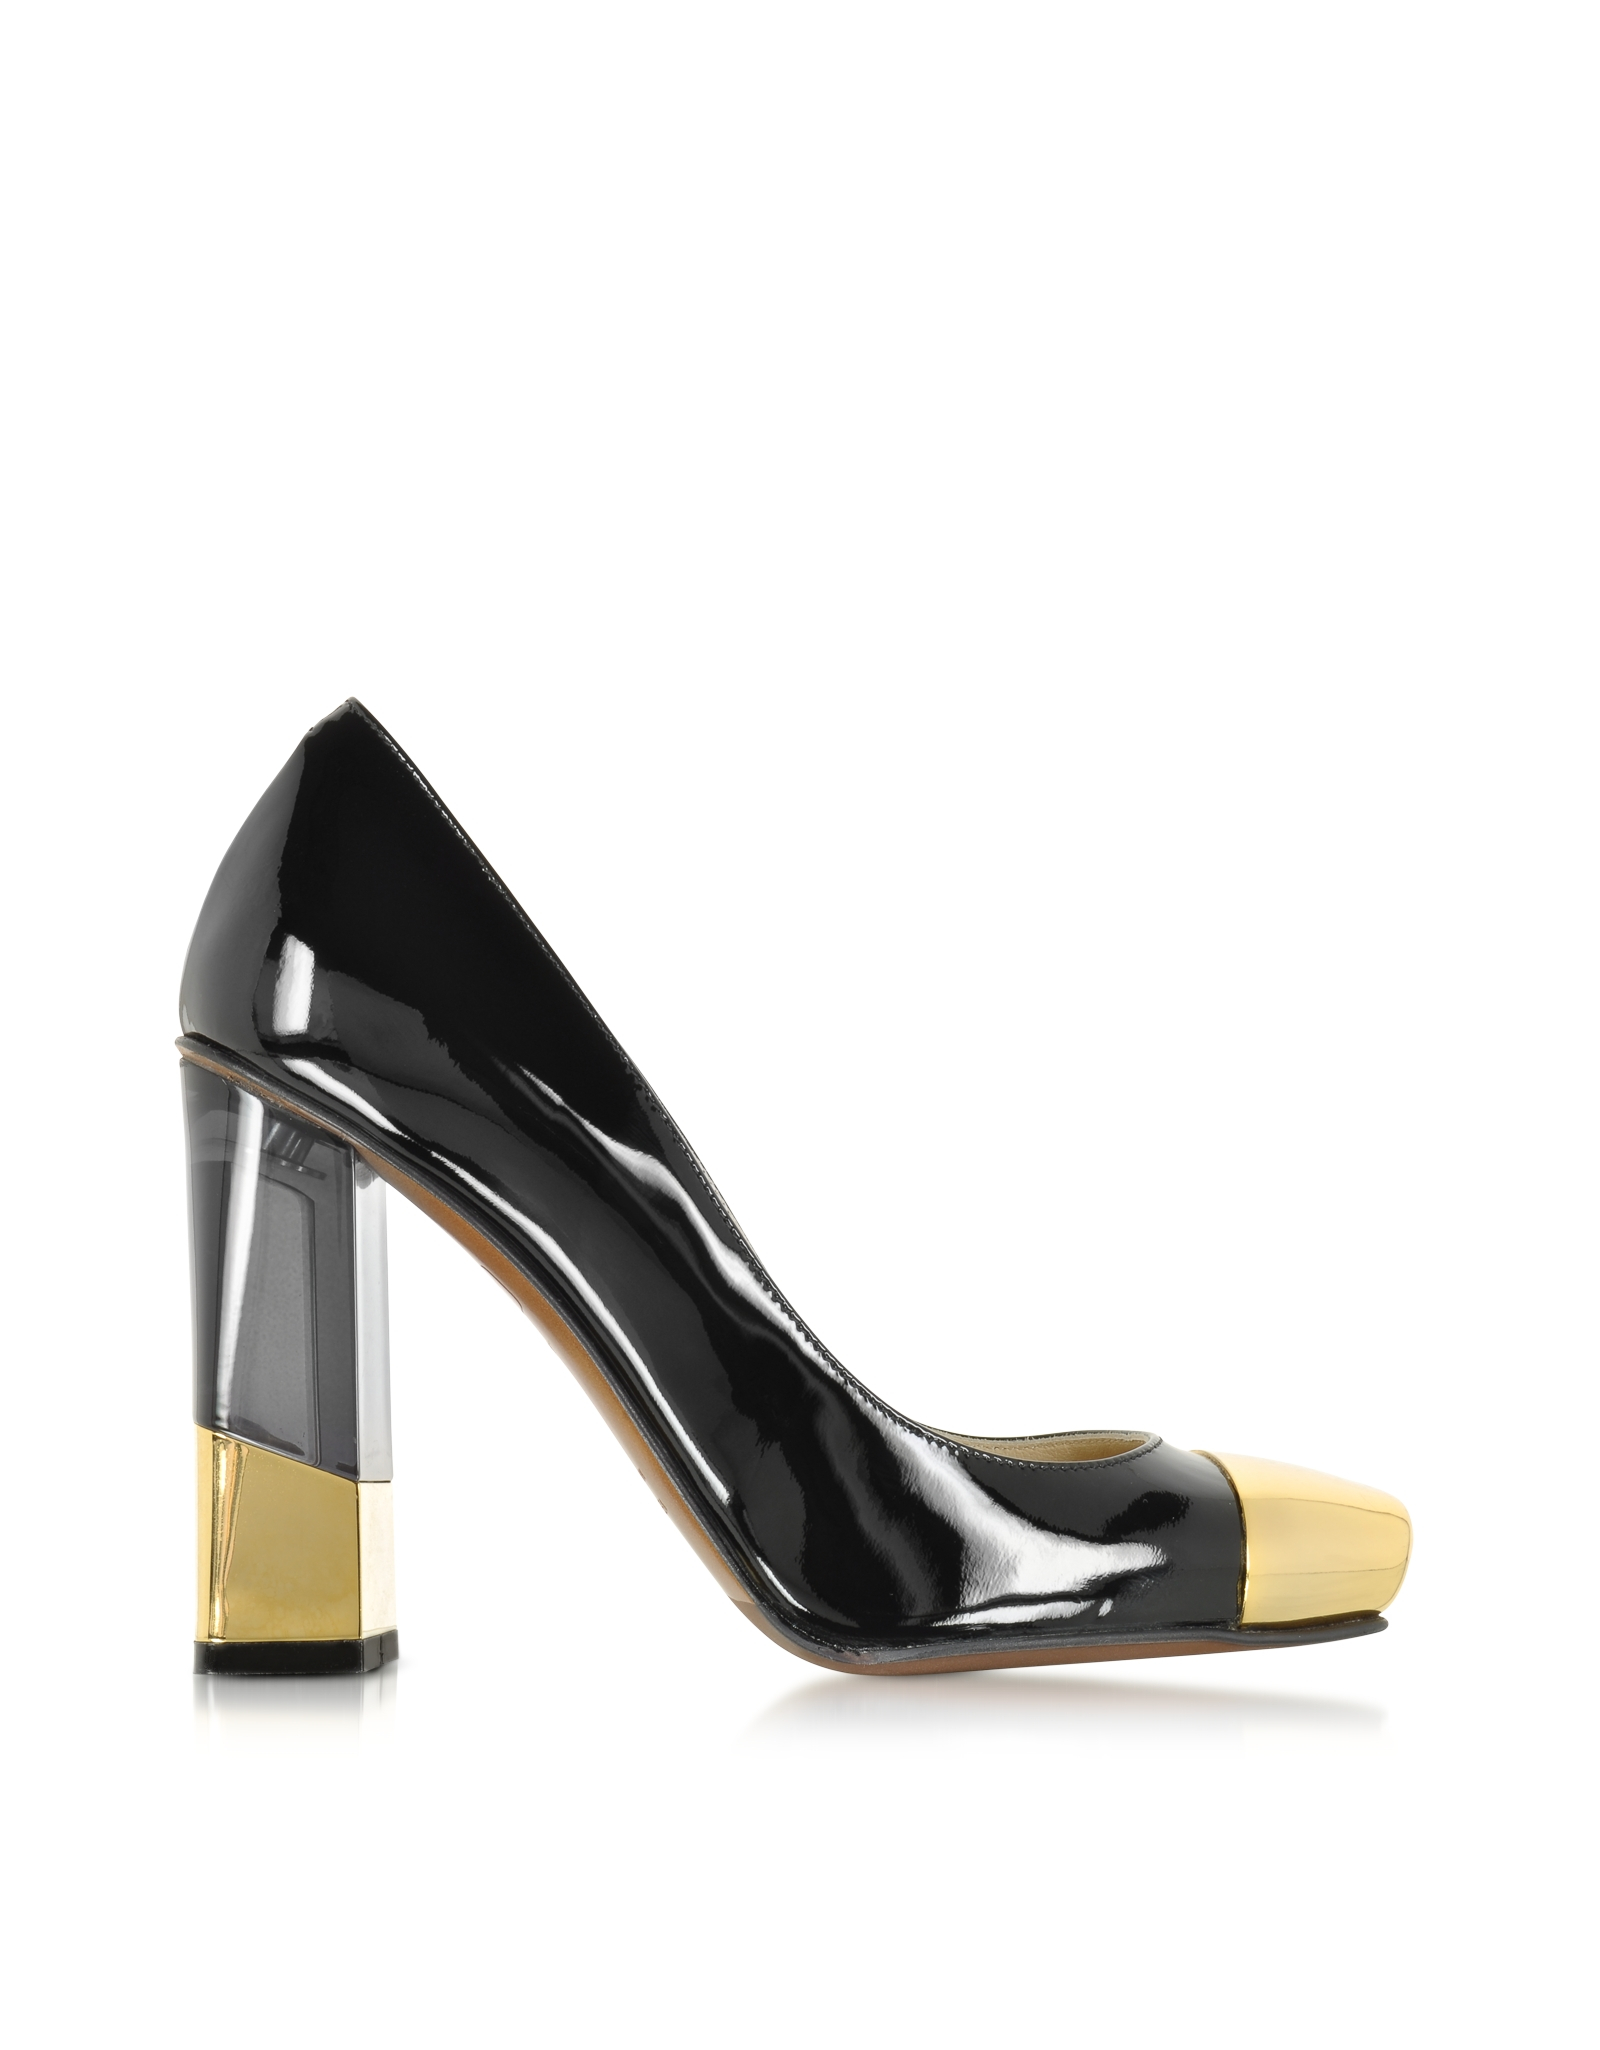 Popular pumps black and gold of Good Quality and at Affordable Prices You can Buy on AliExpress. We believe in helping you find the product that is right for you.